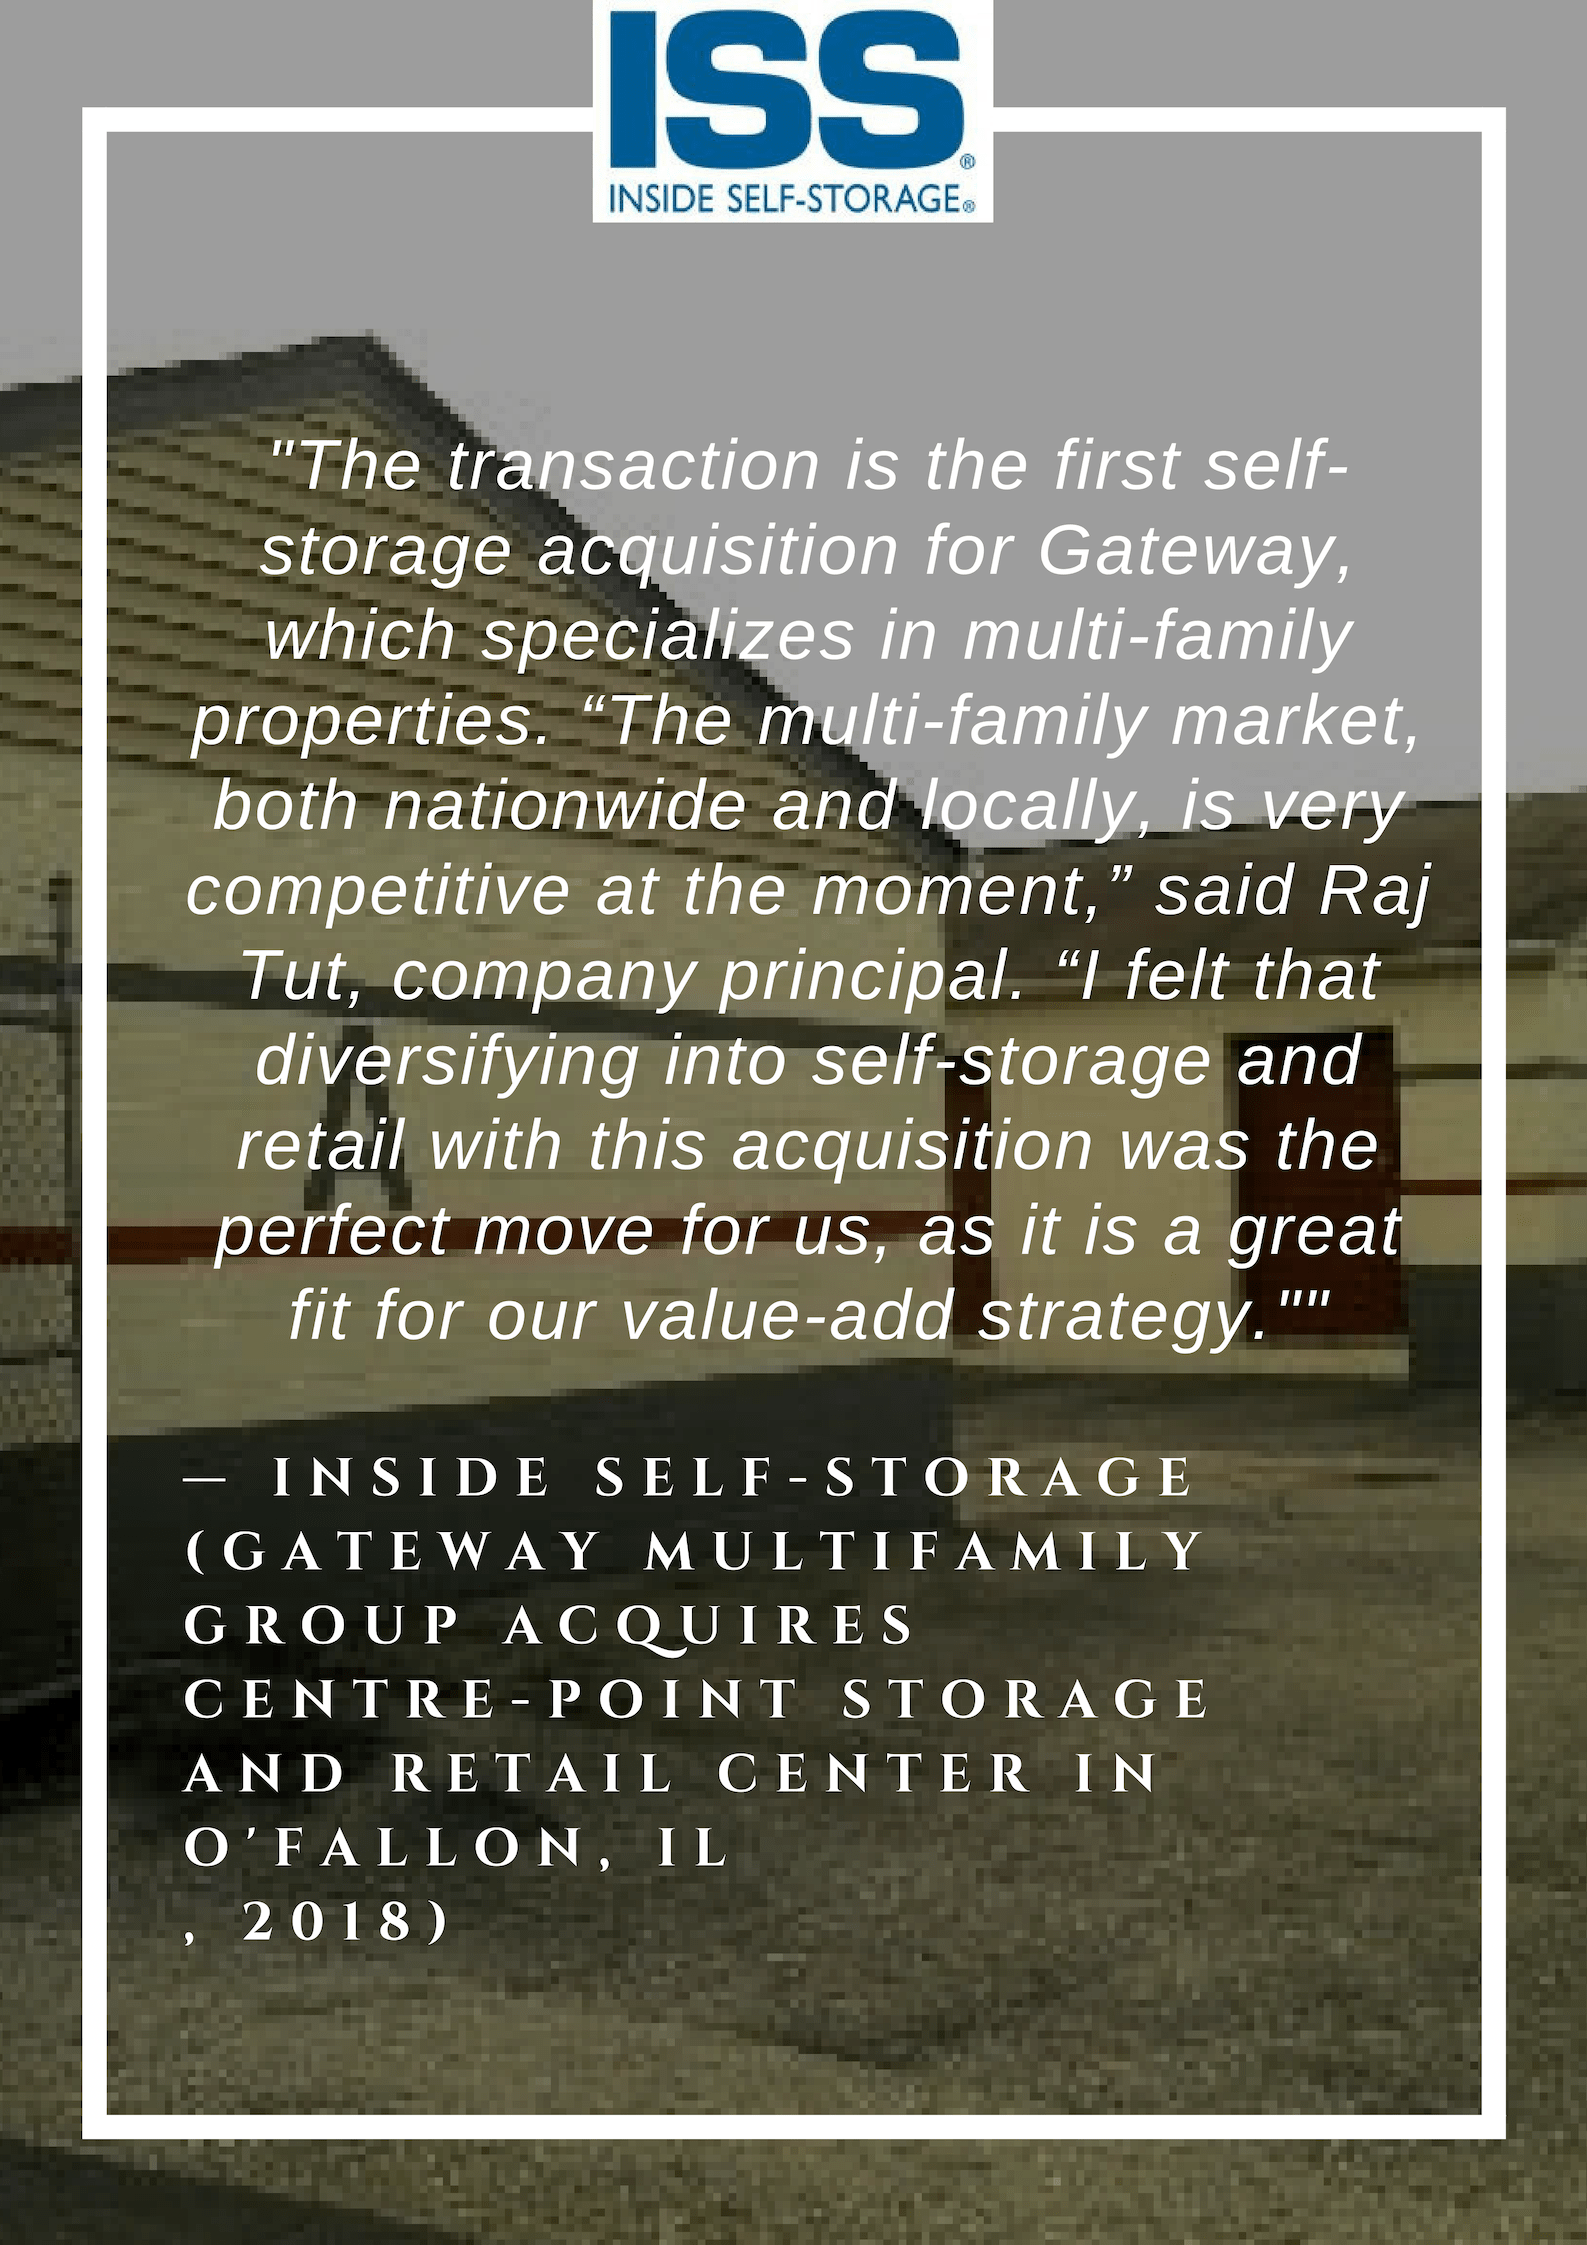 Gateway Multifamily Group Acquires Centre-Point Storage and Retail Center in O'Fallon, IL